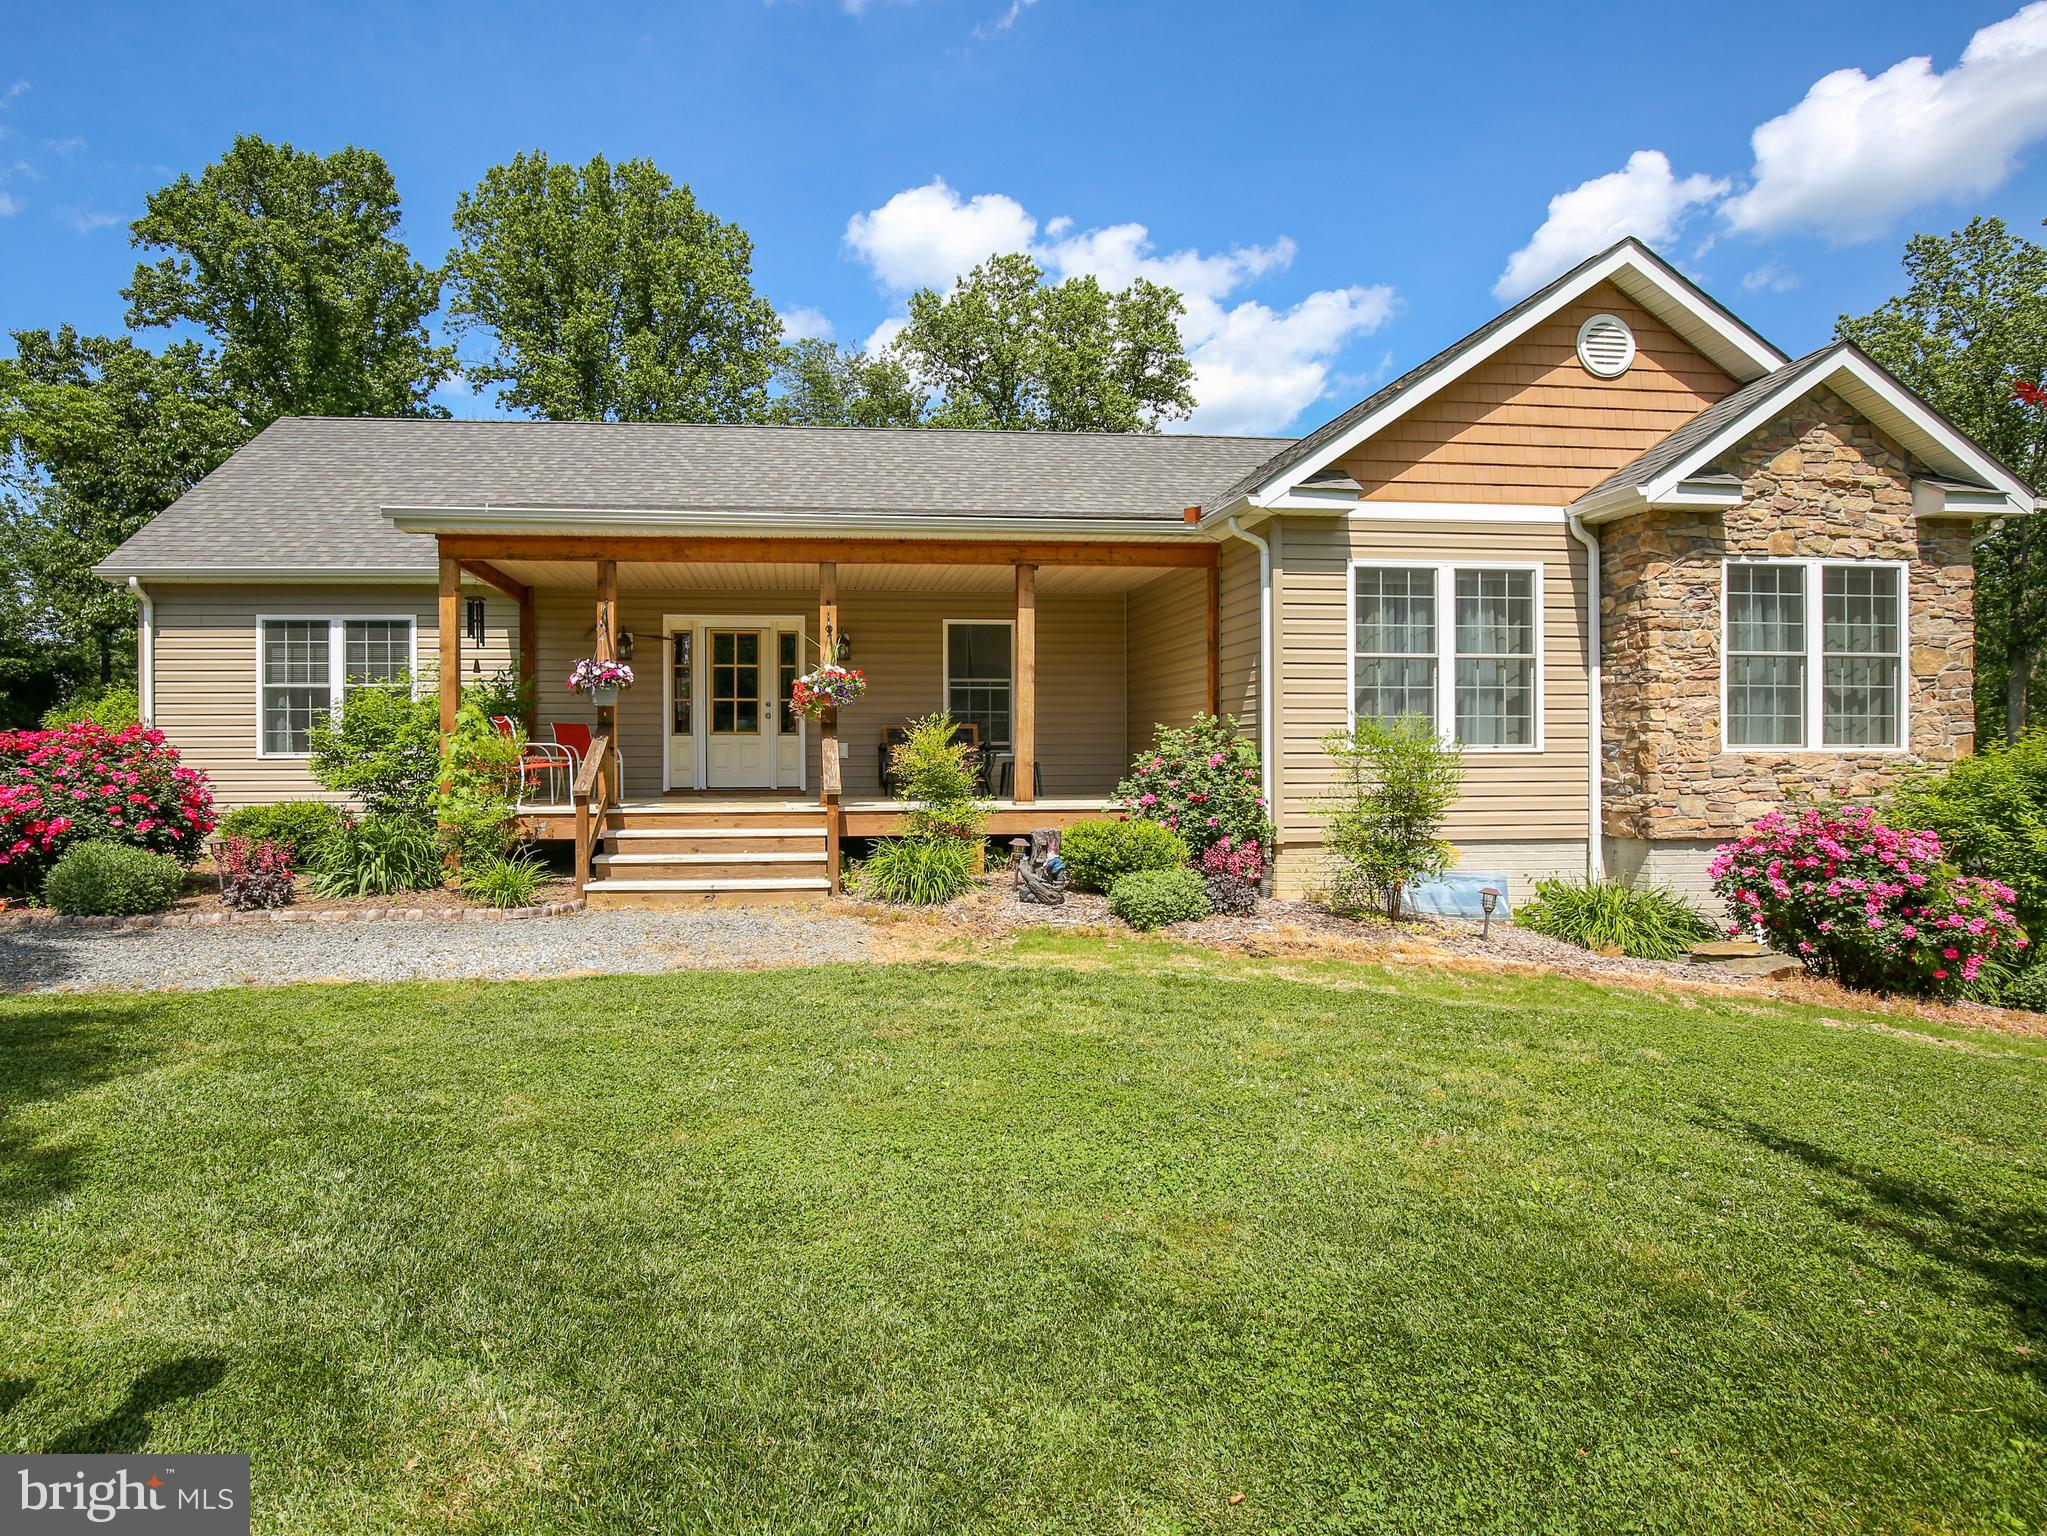 Beautiful, well-maintained, main level living ranch style home on 2 park-like landscaped acres.  Hom